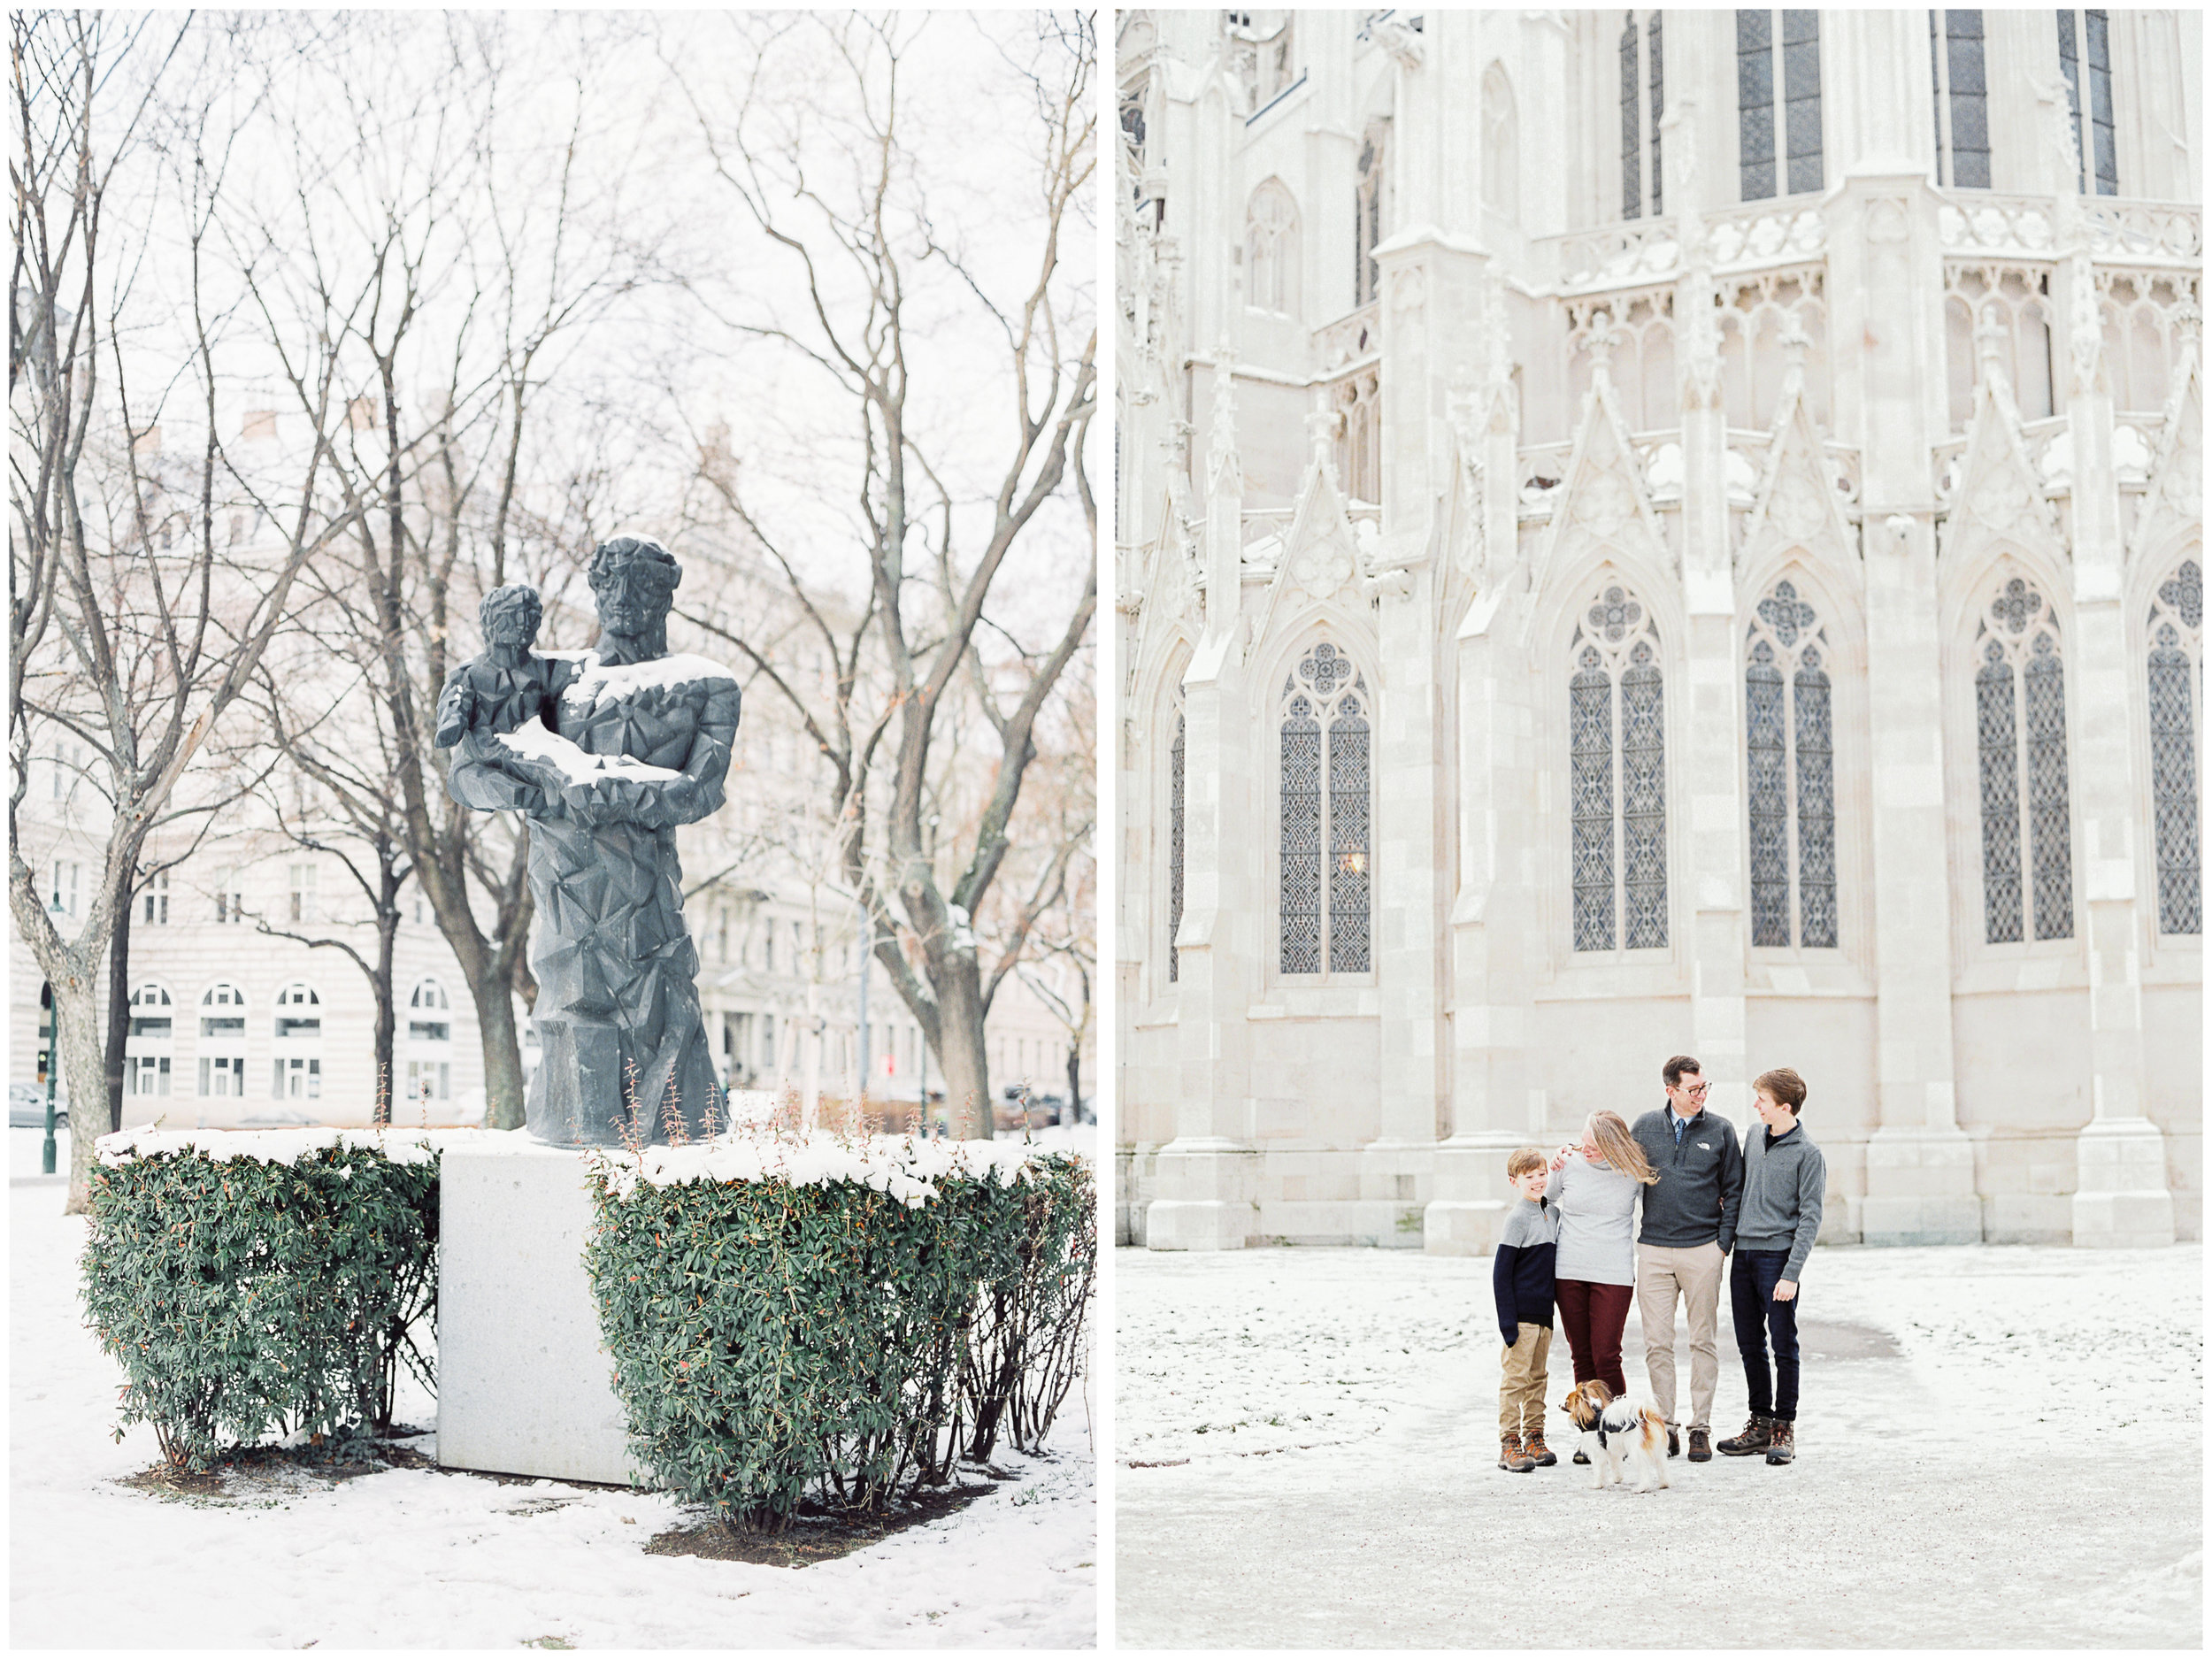 Vienna, Austria | Contax 645 | Fuji400 film | Michelle Mock Photography | Portrait Film Photographer | Snow Family Session